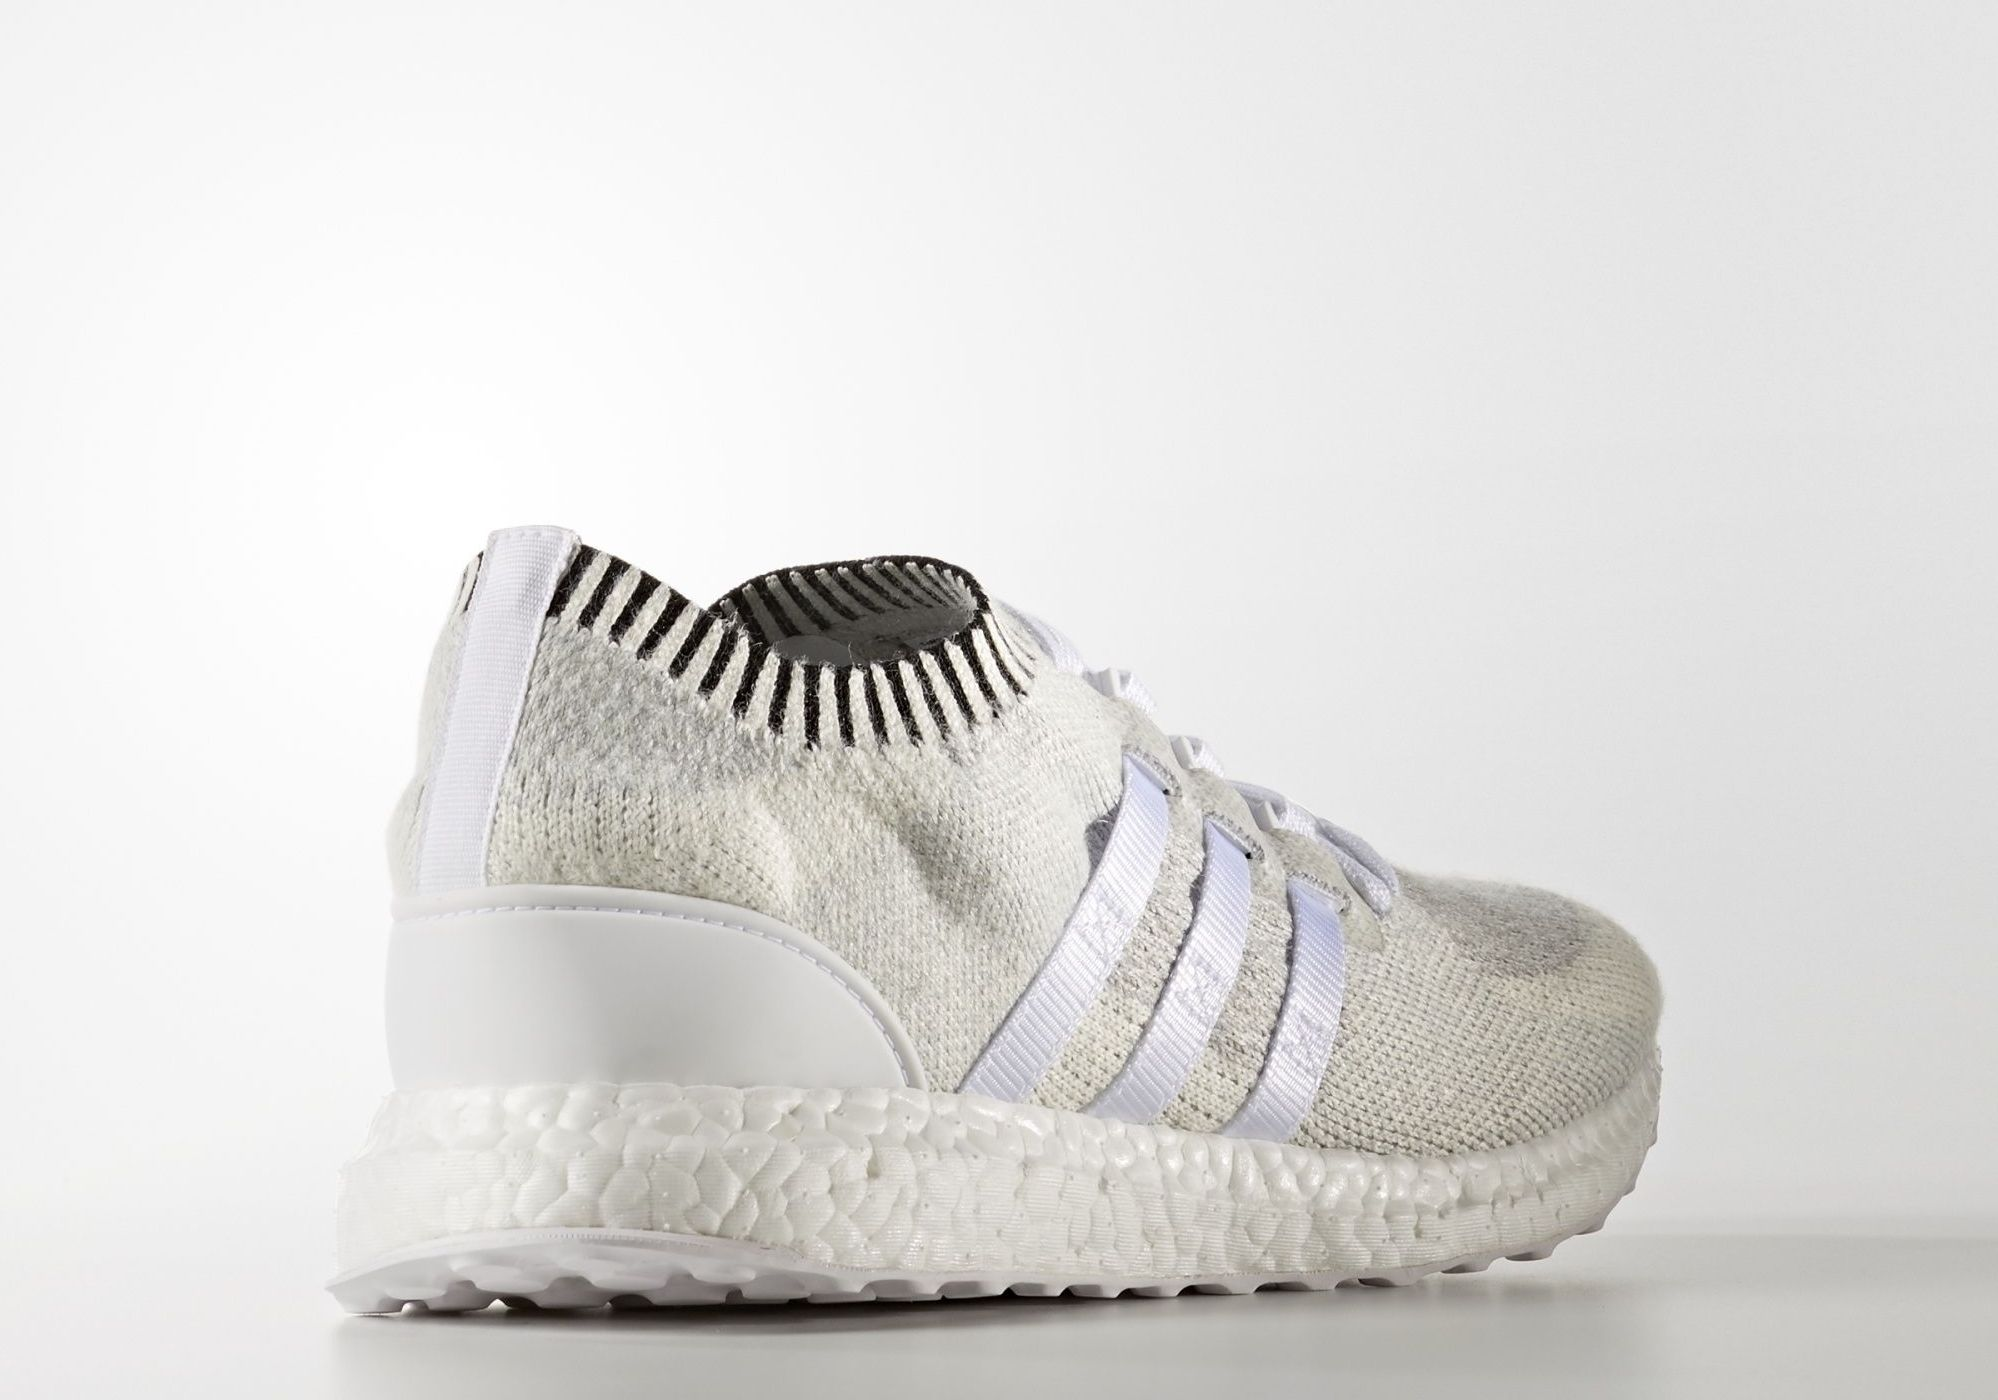 get cheap bd24d 1d7a9 adidas May Ring in the New Year with the EQT Support Ultra ...